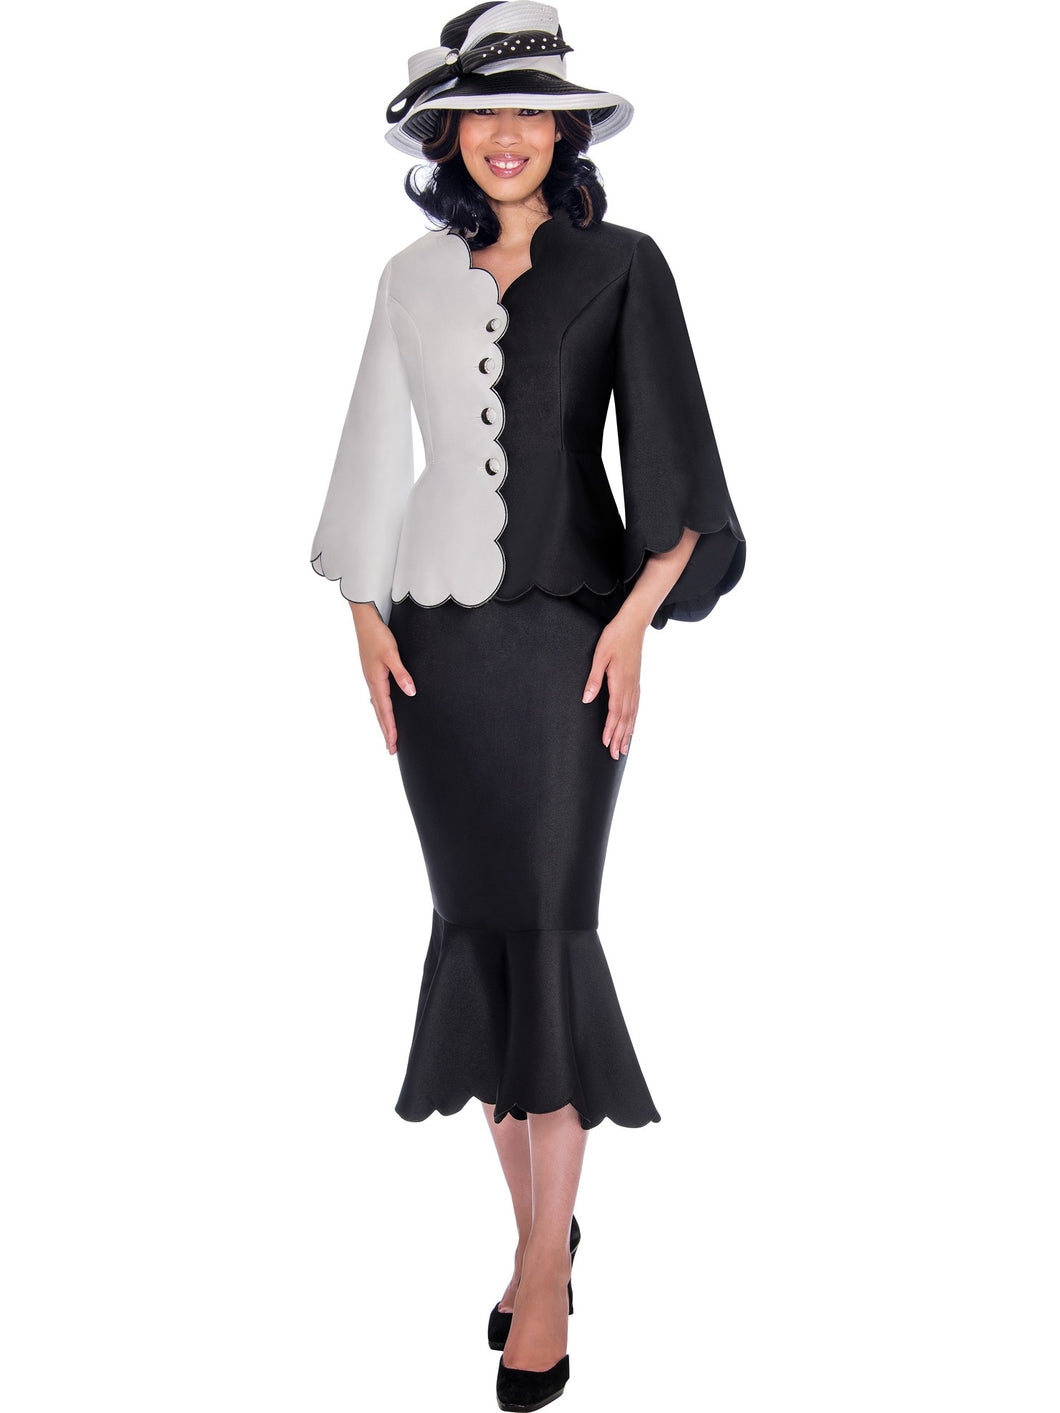 GMI G7472 Black/White Church Suit, Special Occasion Skirt Suit, Mother of the Bride